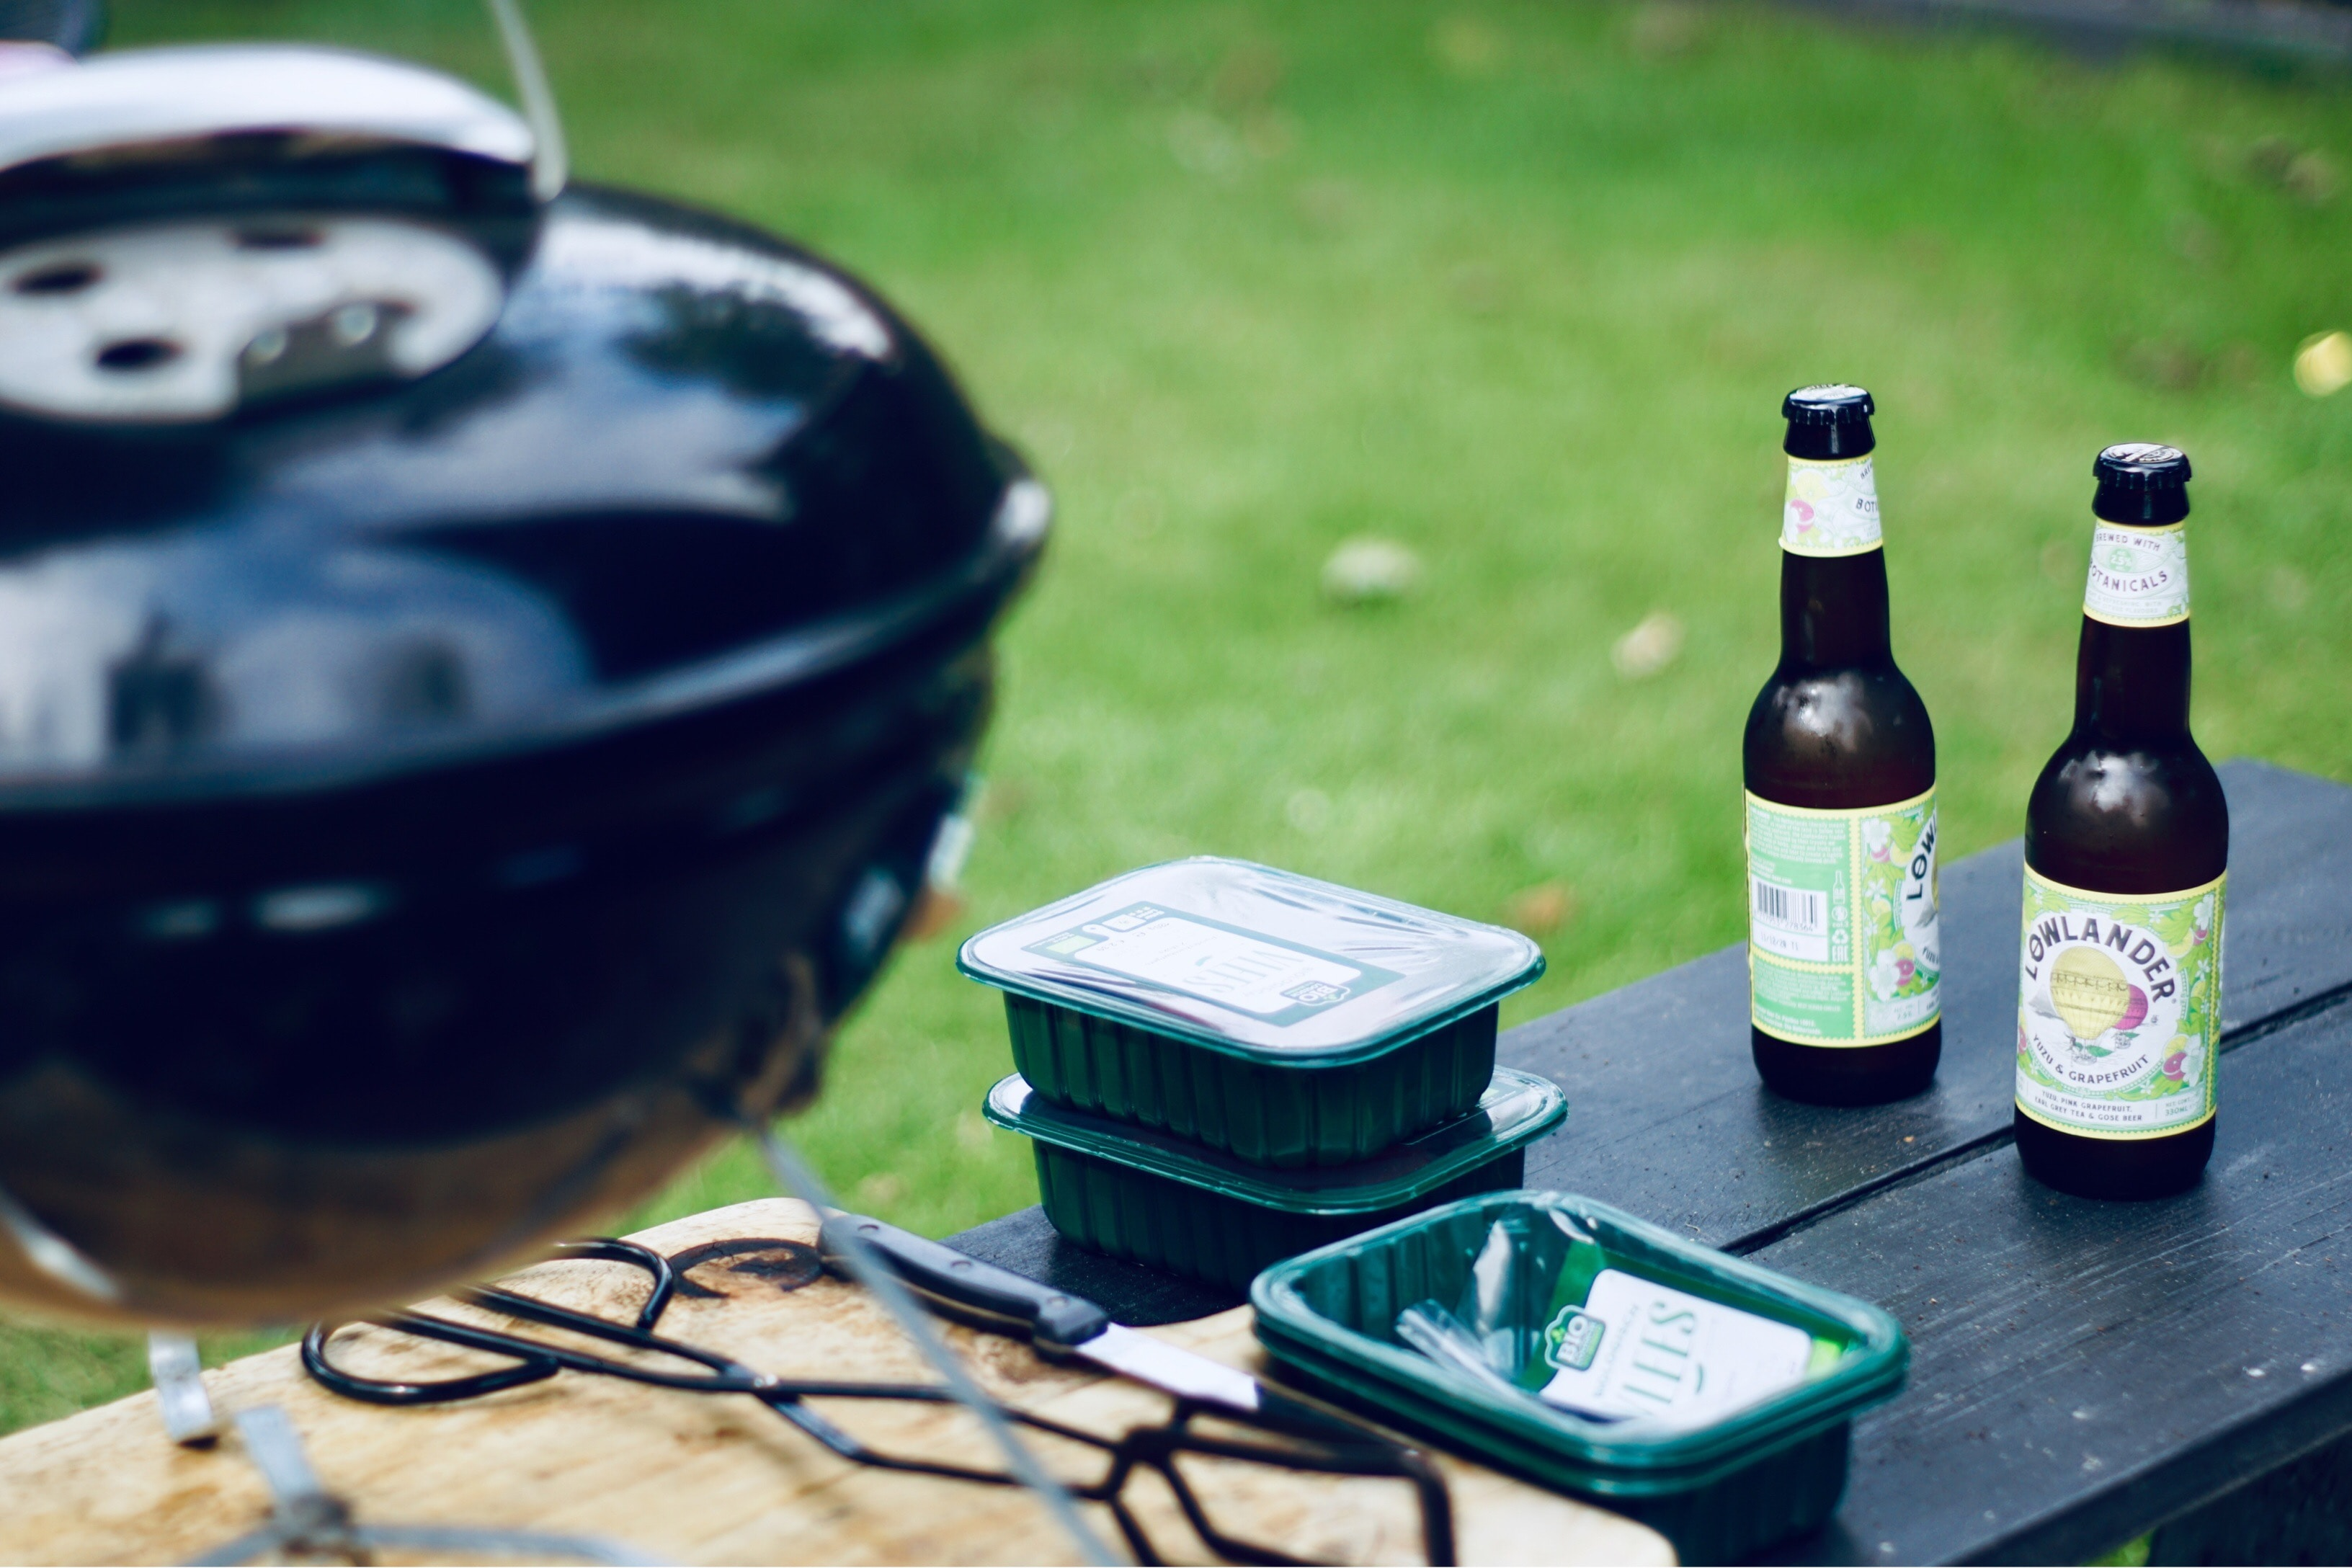 two bottles of beer next to the grill set